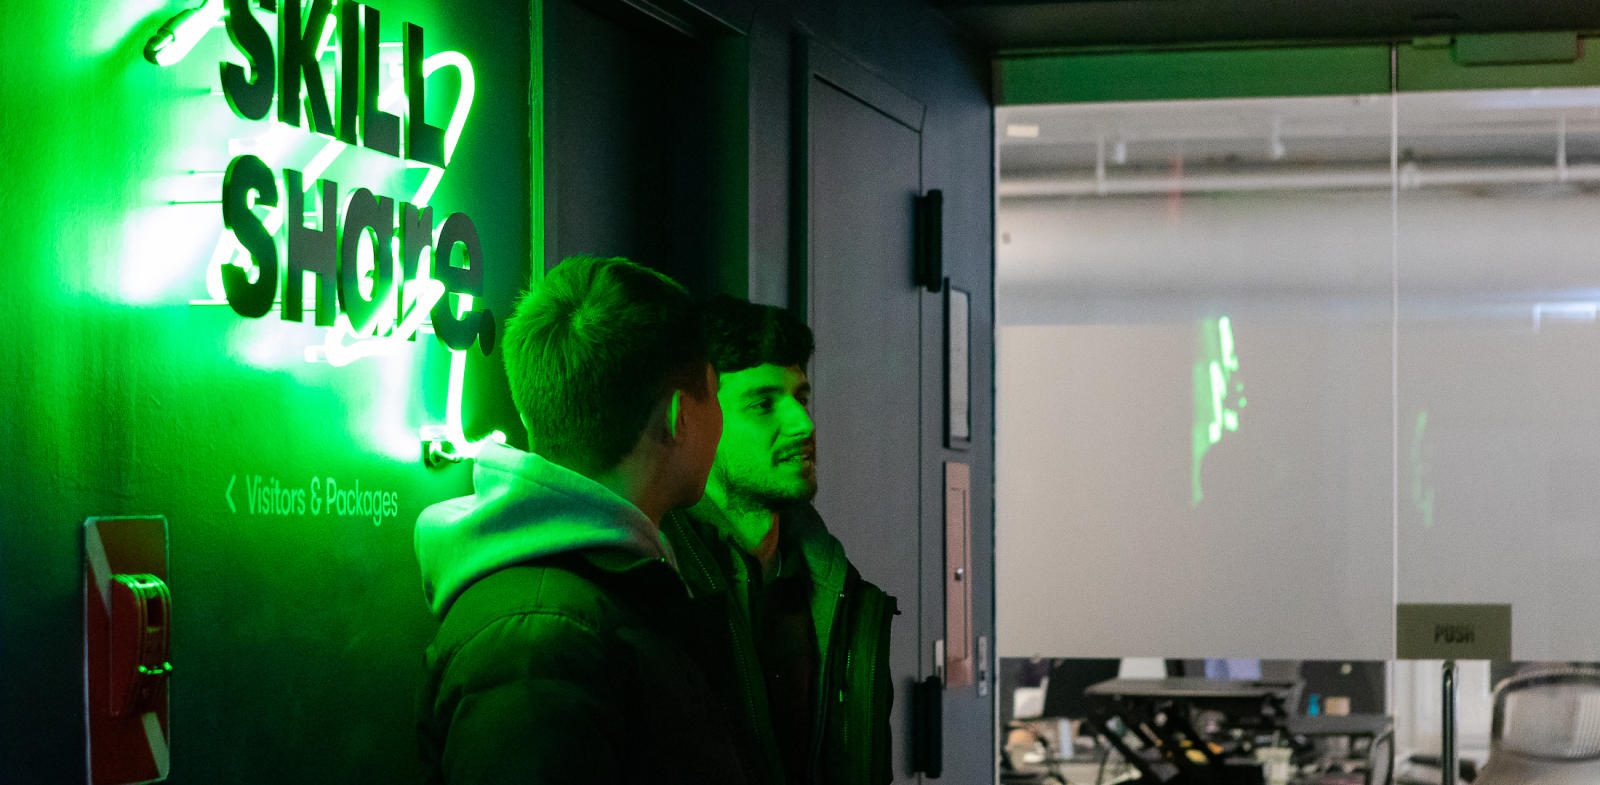 two people talking in front of a skillshare neon sign